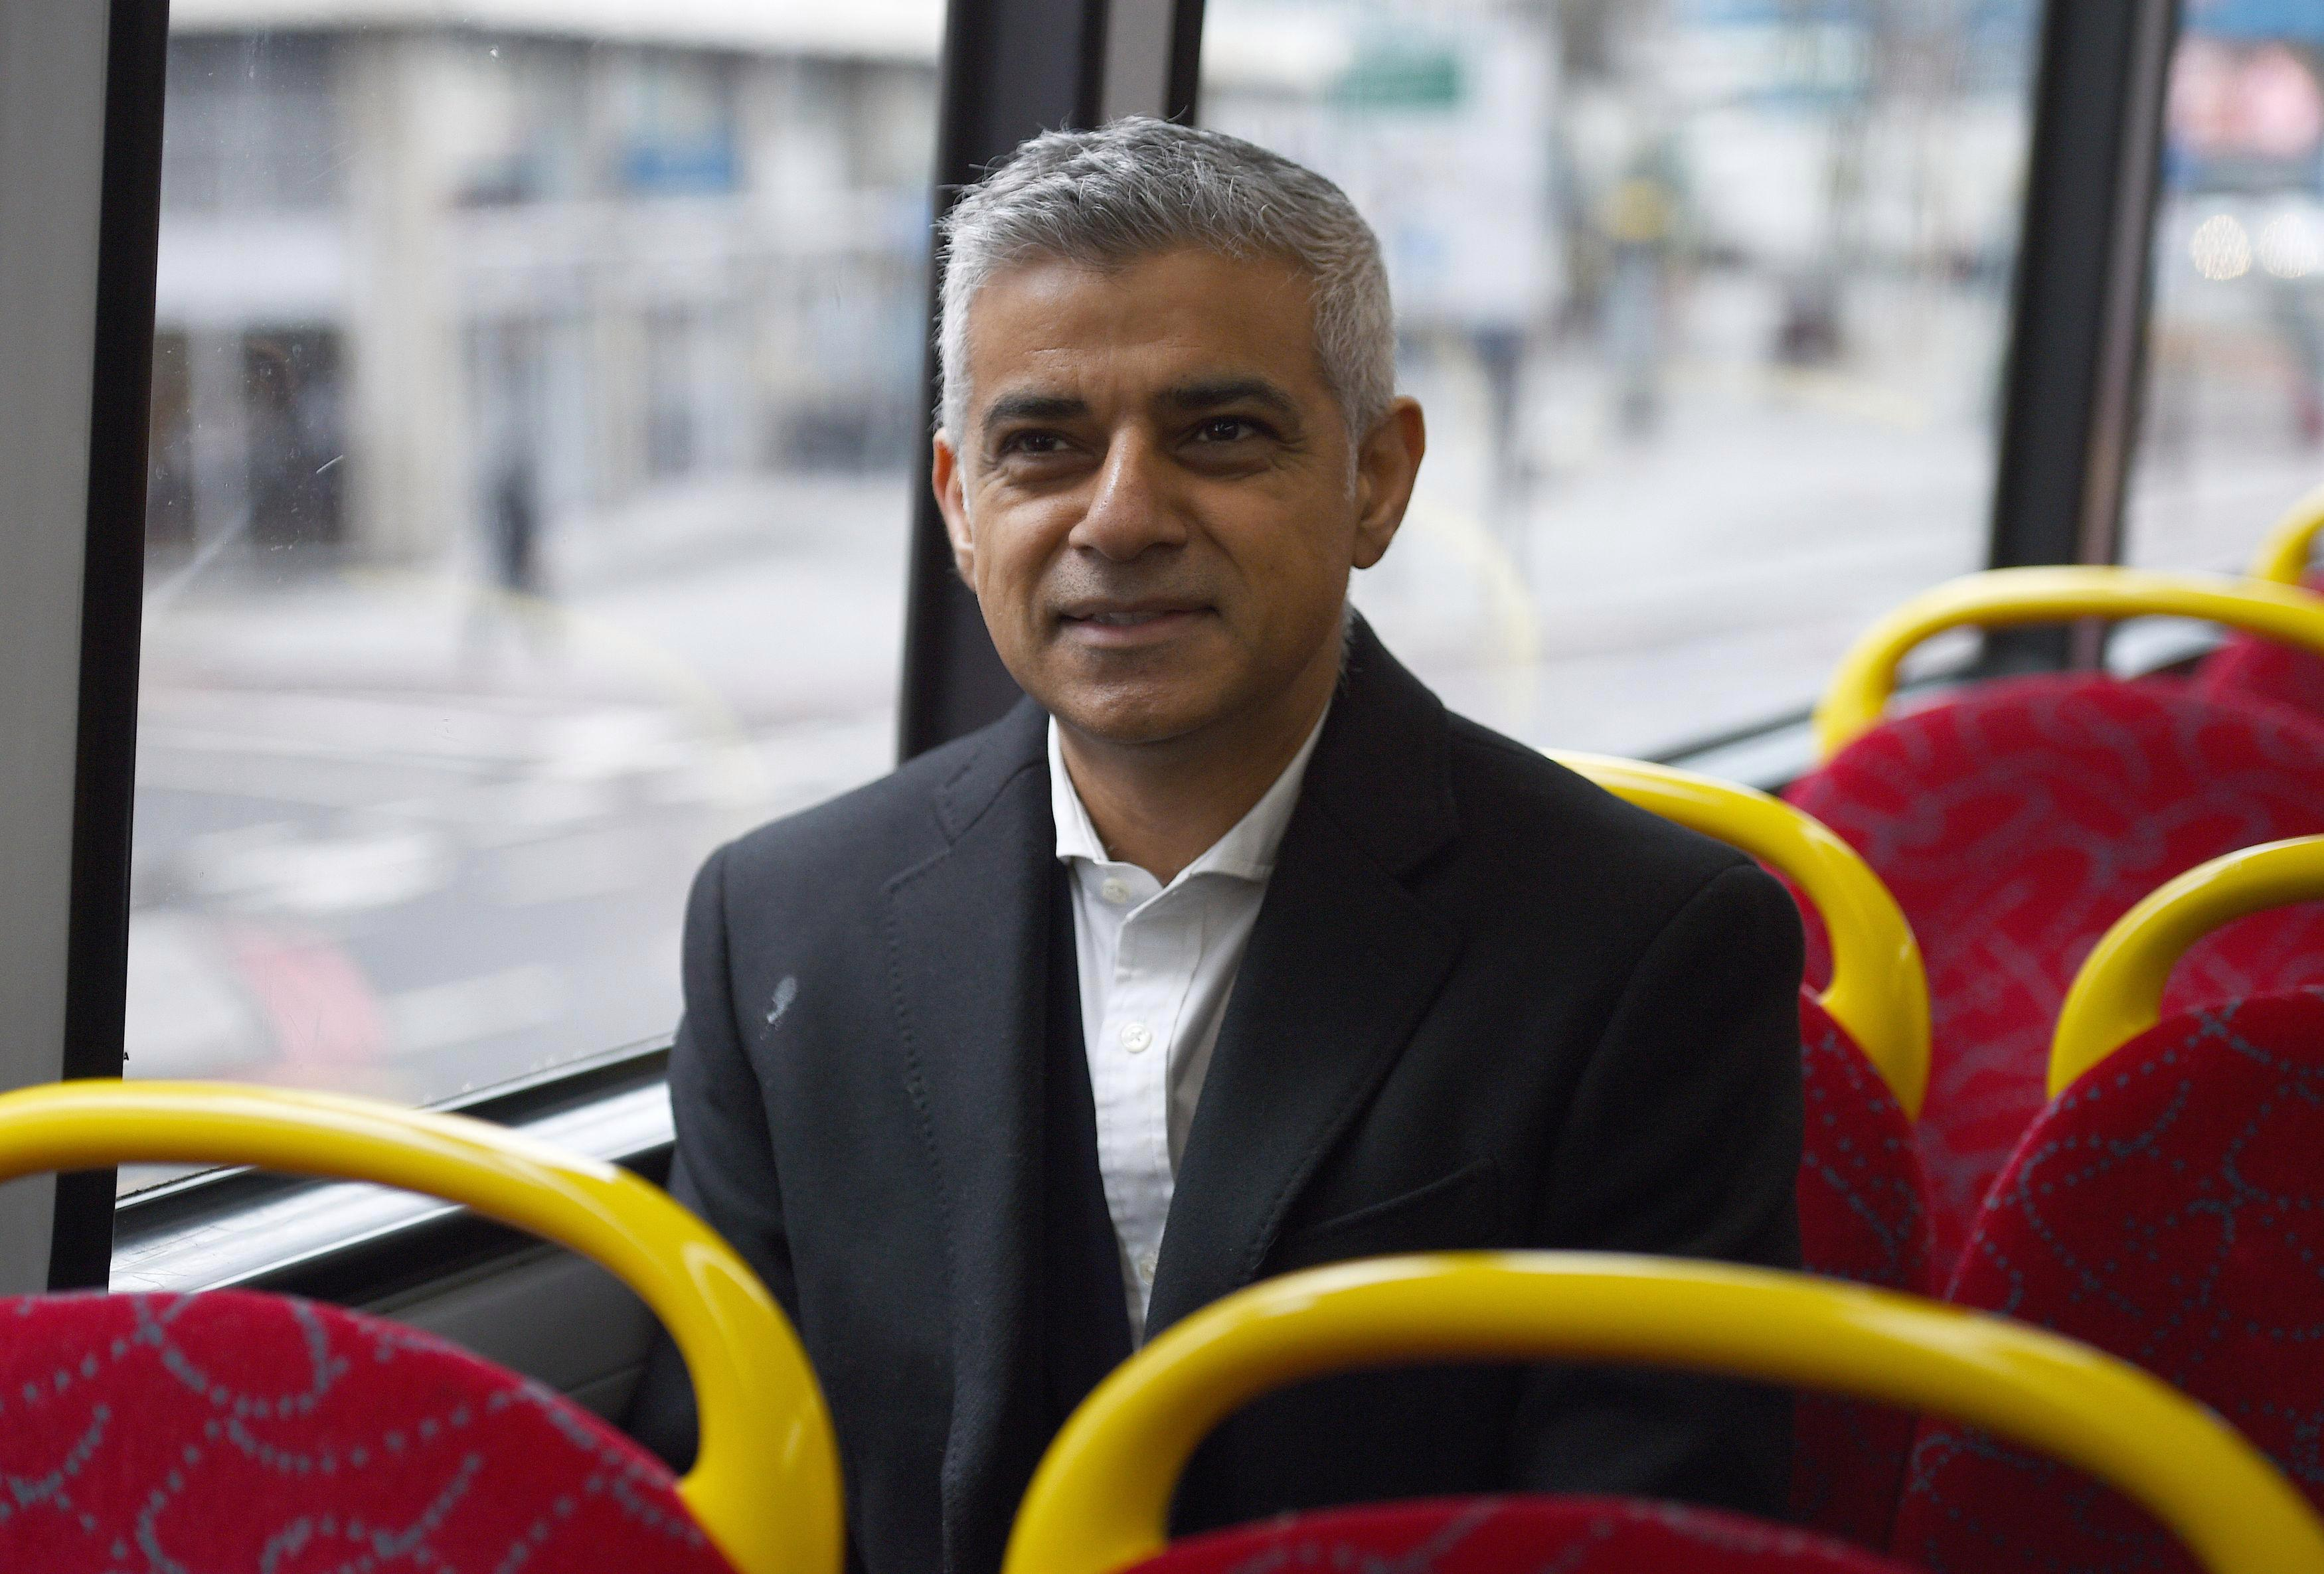 Social media giants face massive fines if they don't stop spreading hate speech, London Mayor warns